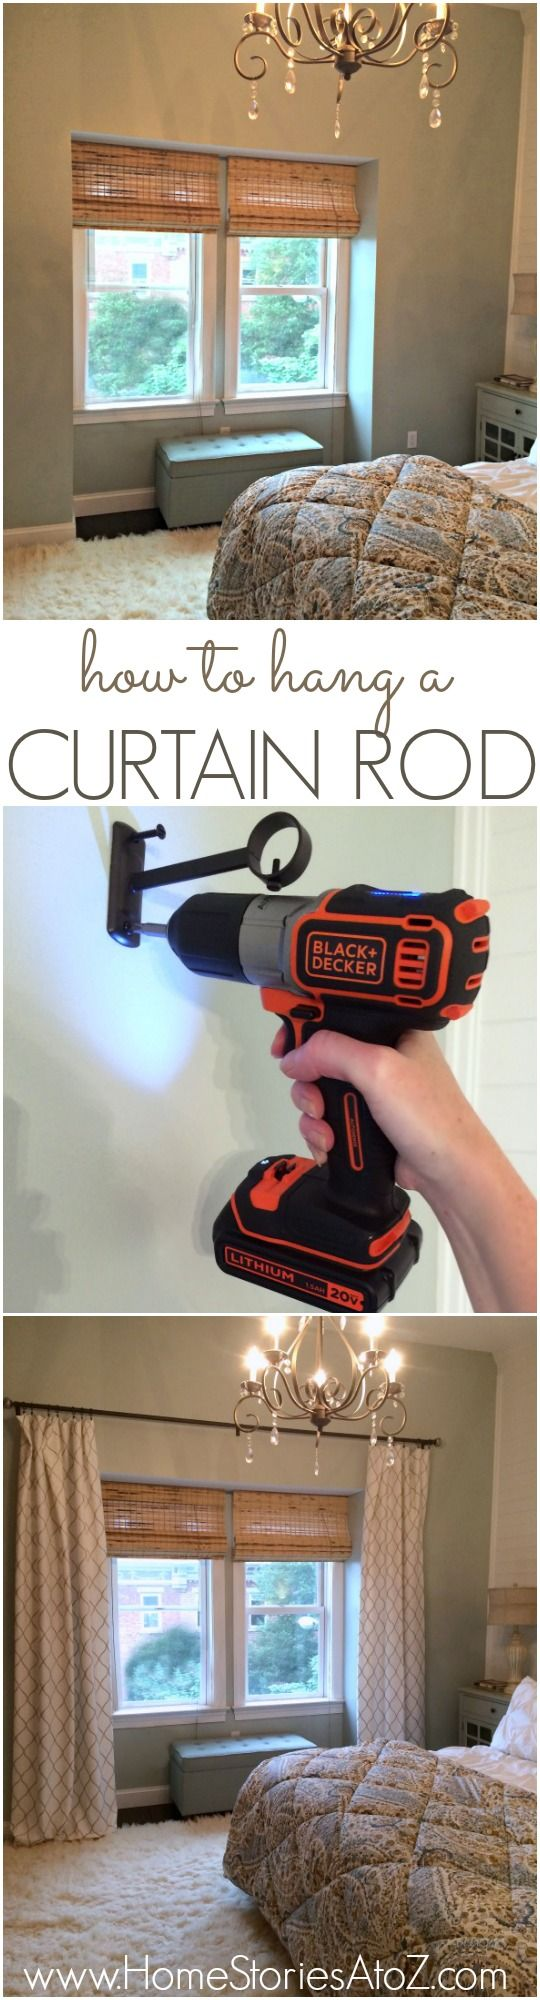 Diy copper curtain rods that wont break the bank diy how to window - How To Hang A Curtain Rod And Black Decker Drill Giveaway